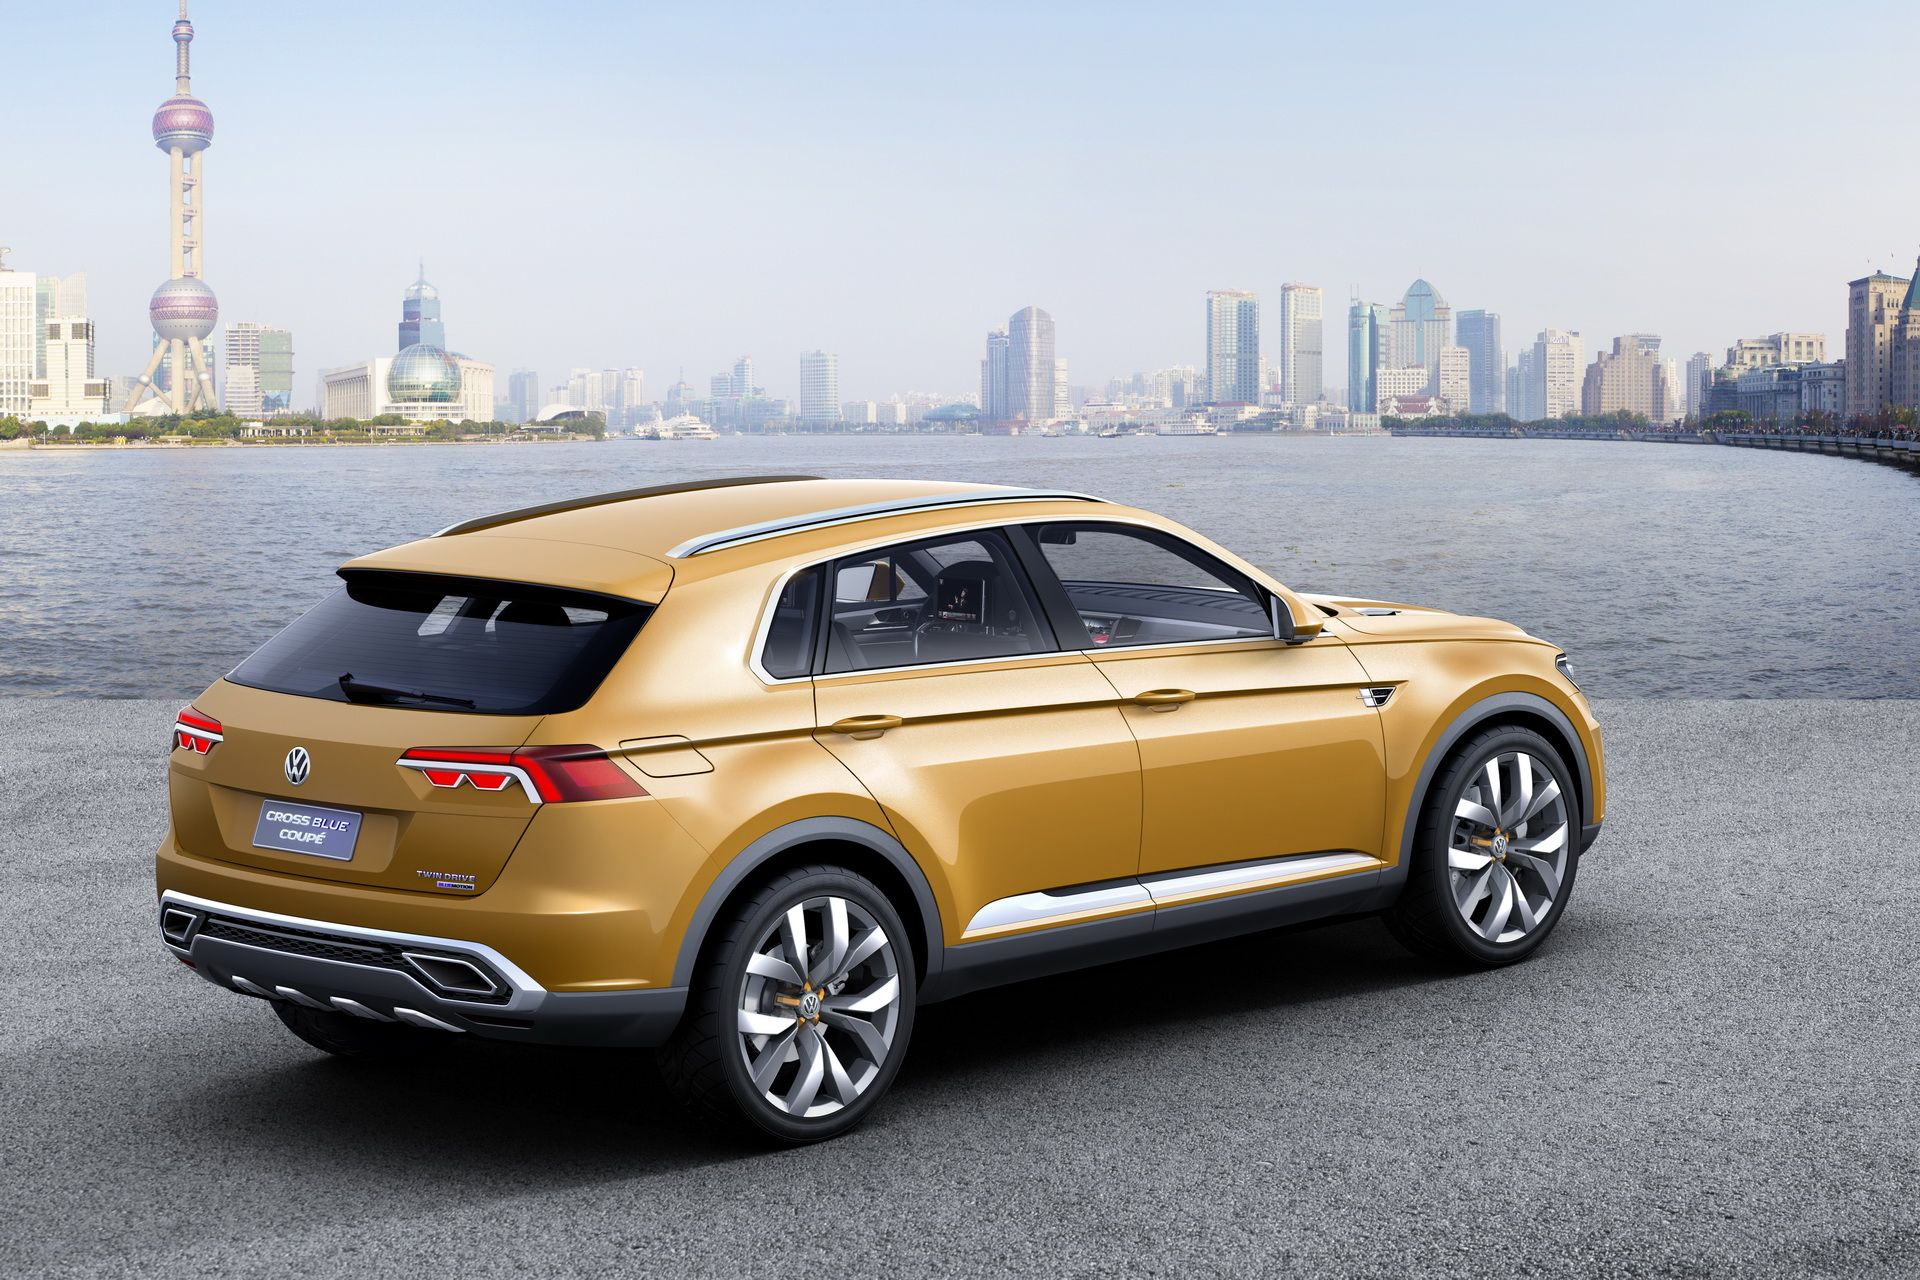 vw-crossblue-coupe-concept-3.jpg